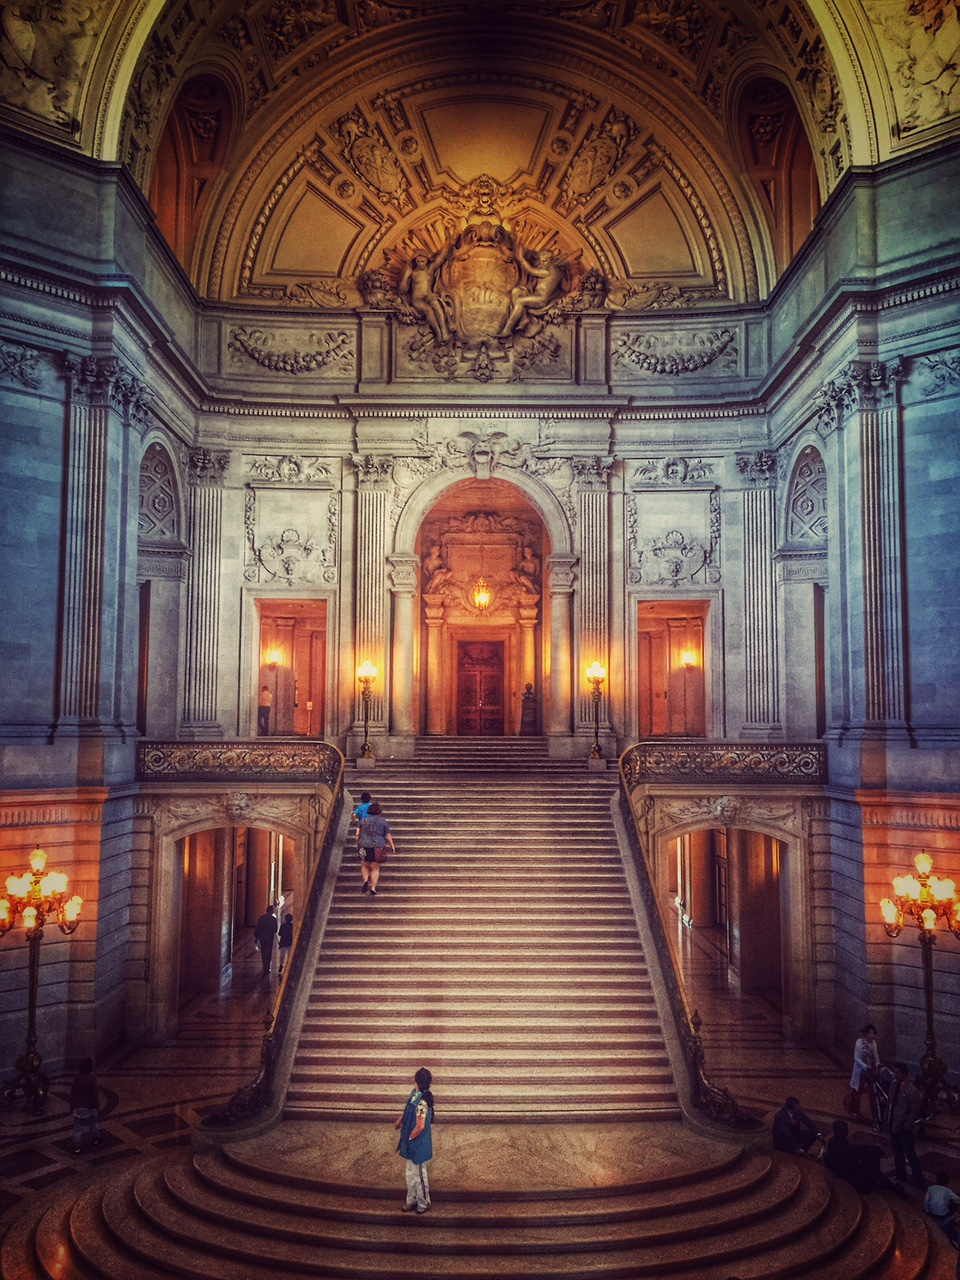 this is city hall, and it is magnificent!